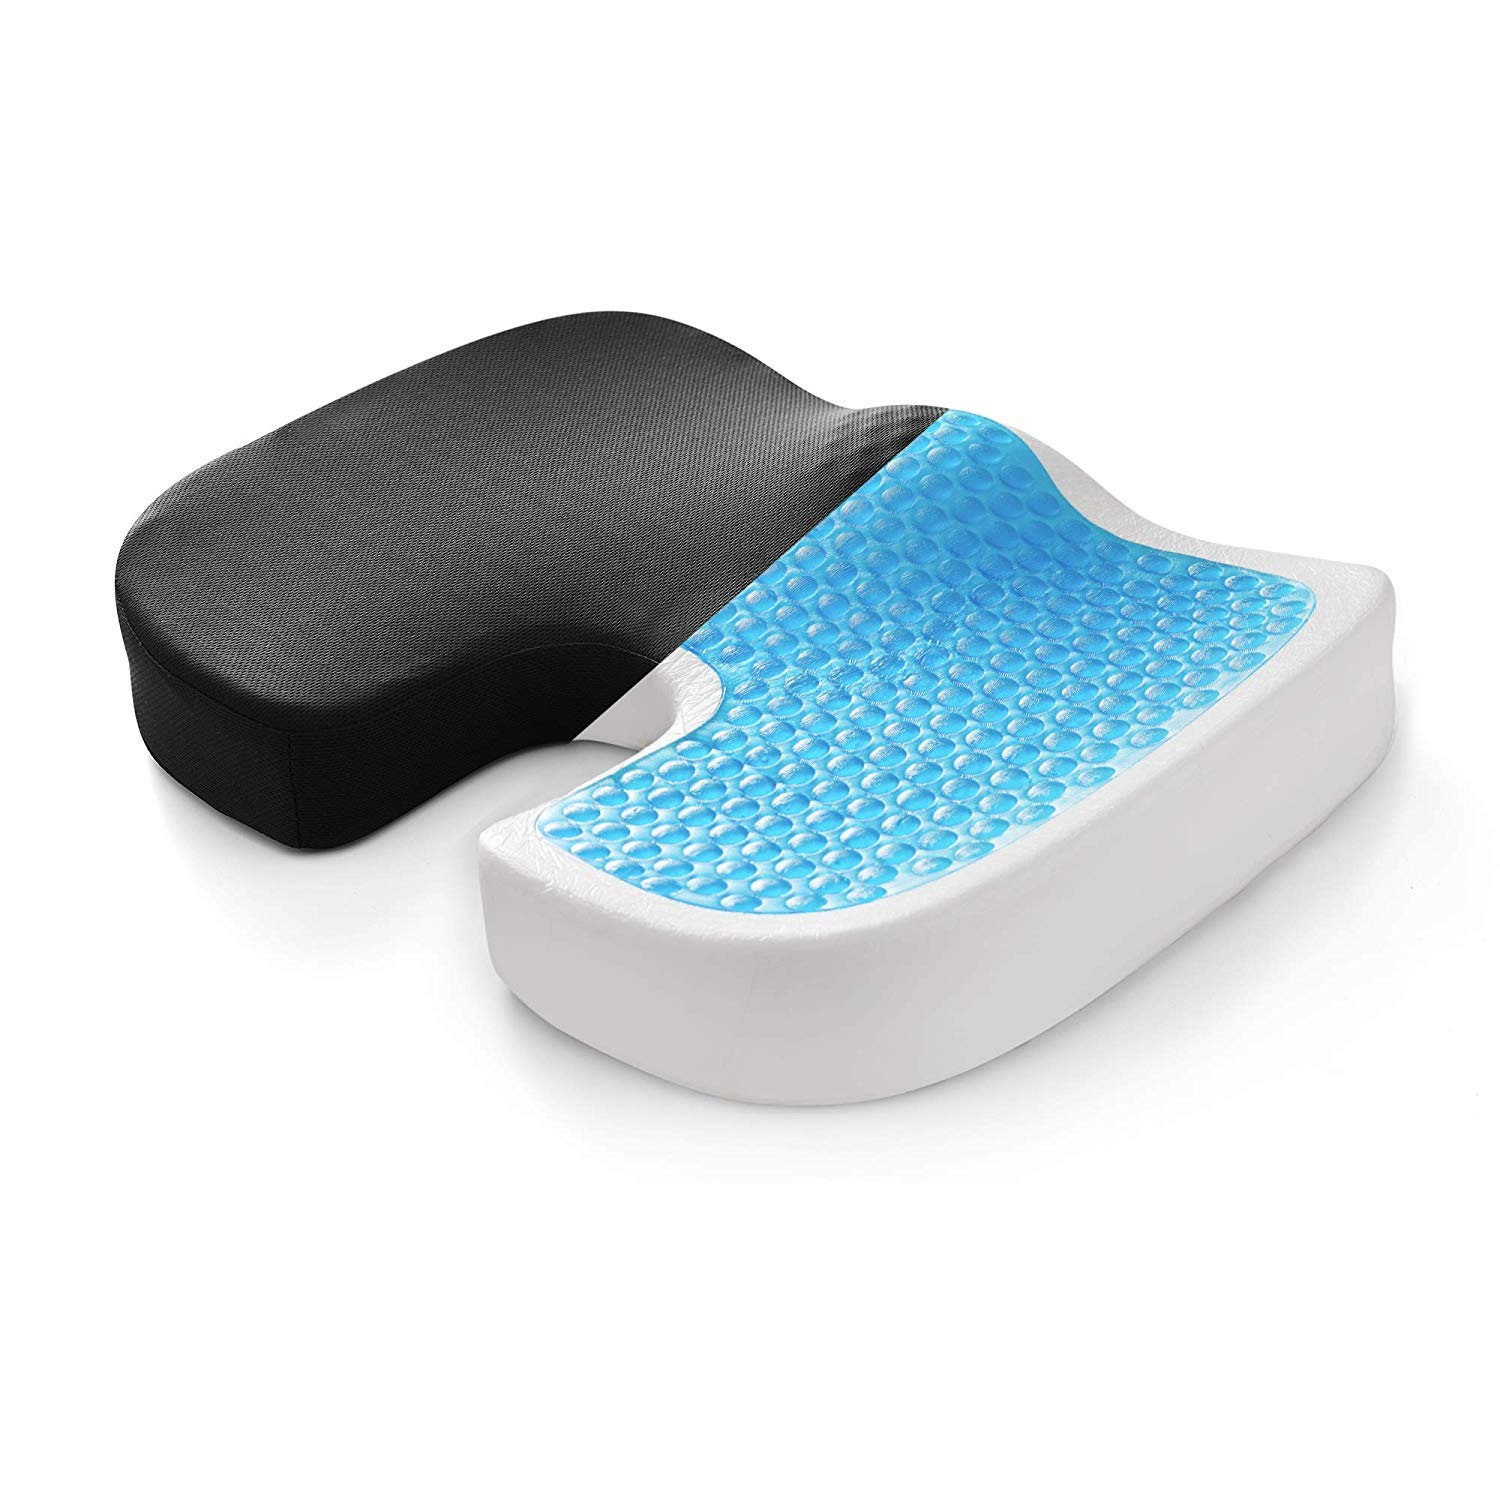 Coccyx Orthopedic Memory Foam Seat Cushion - Helps with Sciatica Back Pain - Perfect for Your Office Chair and Sitting on The Floor Gives Relief from Tailbone Pain (Gel Seating Cushion)